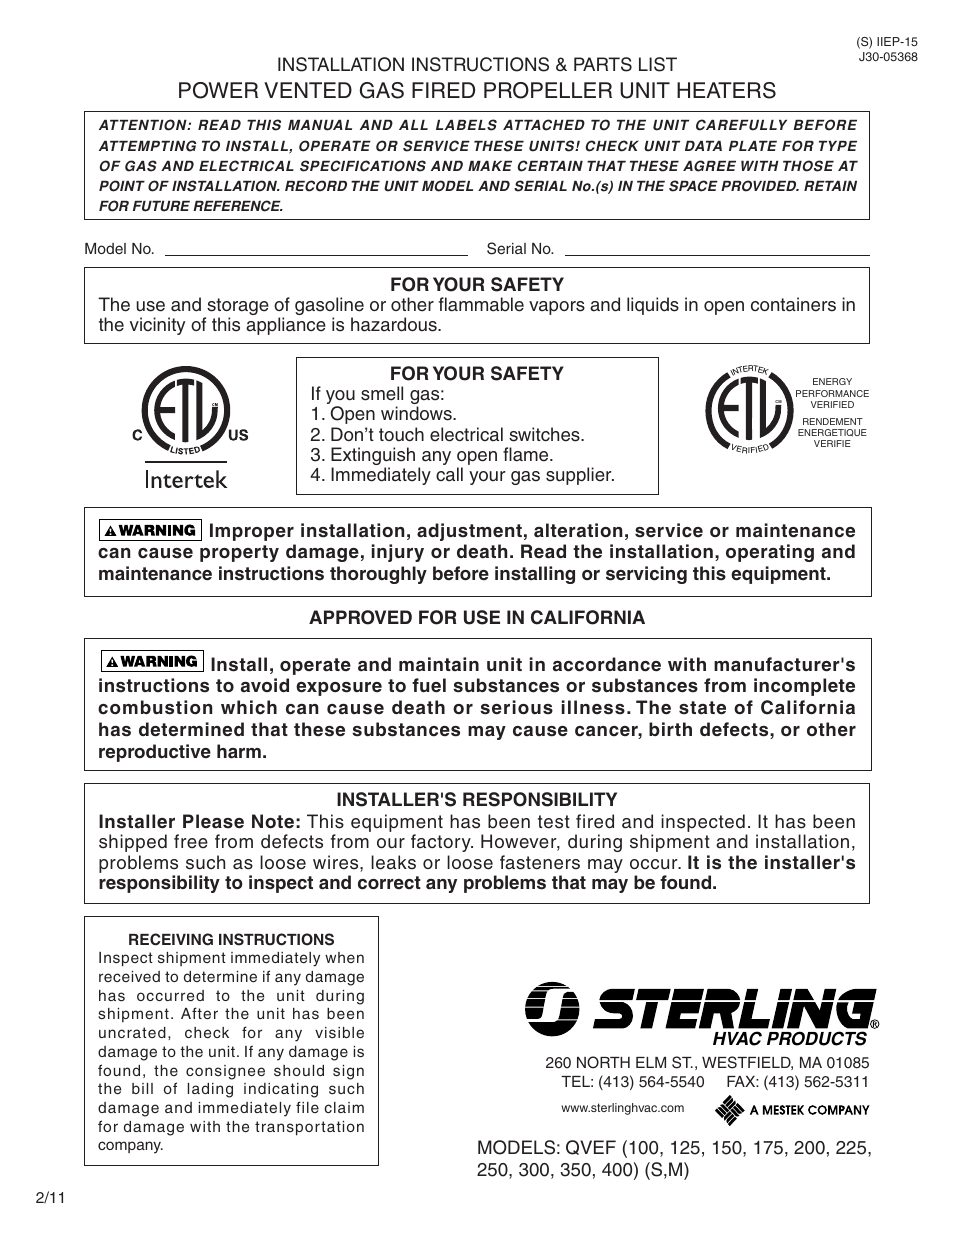 Sterling QVEF User Manual | 28 pages on water heater diagram, unit heater parts, unit heater exhaust, modine heater parts diagram, unit heater installation, electric furnace diagram, robertshaw ignition control diagram, gas furnace control board diagram, unit heater troubleshooting, groundwater diagram, fan coil unit diagram, gas furnace electrical diagram,